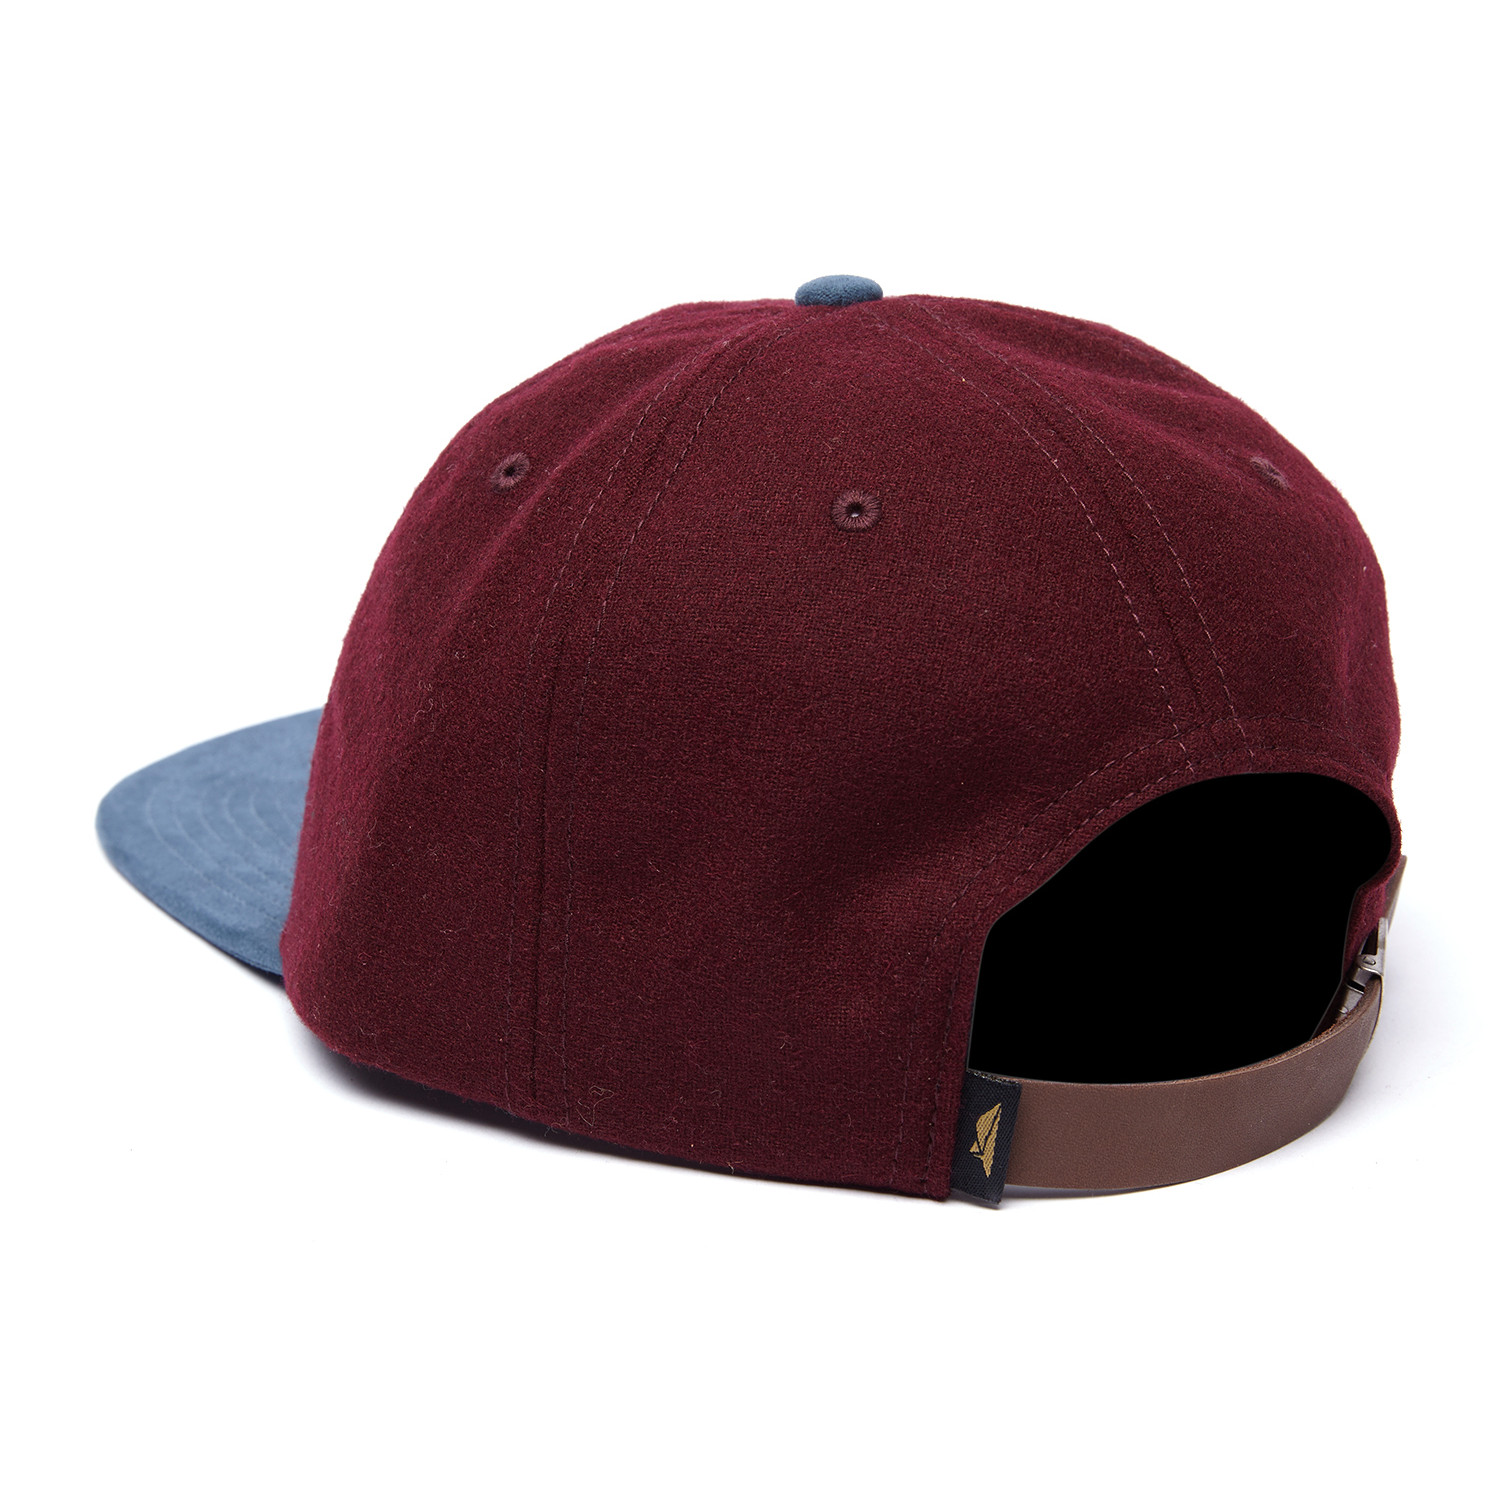 Free shipping BOTH ways on polo ralph lauren hats, from our vast selection of styles. Fast delivery, and 24/7/ real-person service with a smile. Click or call